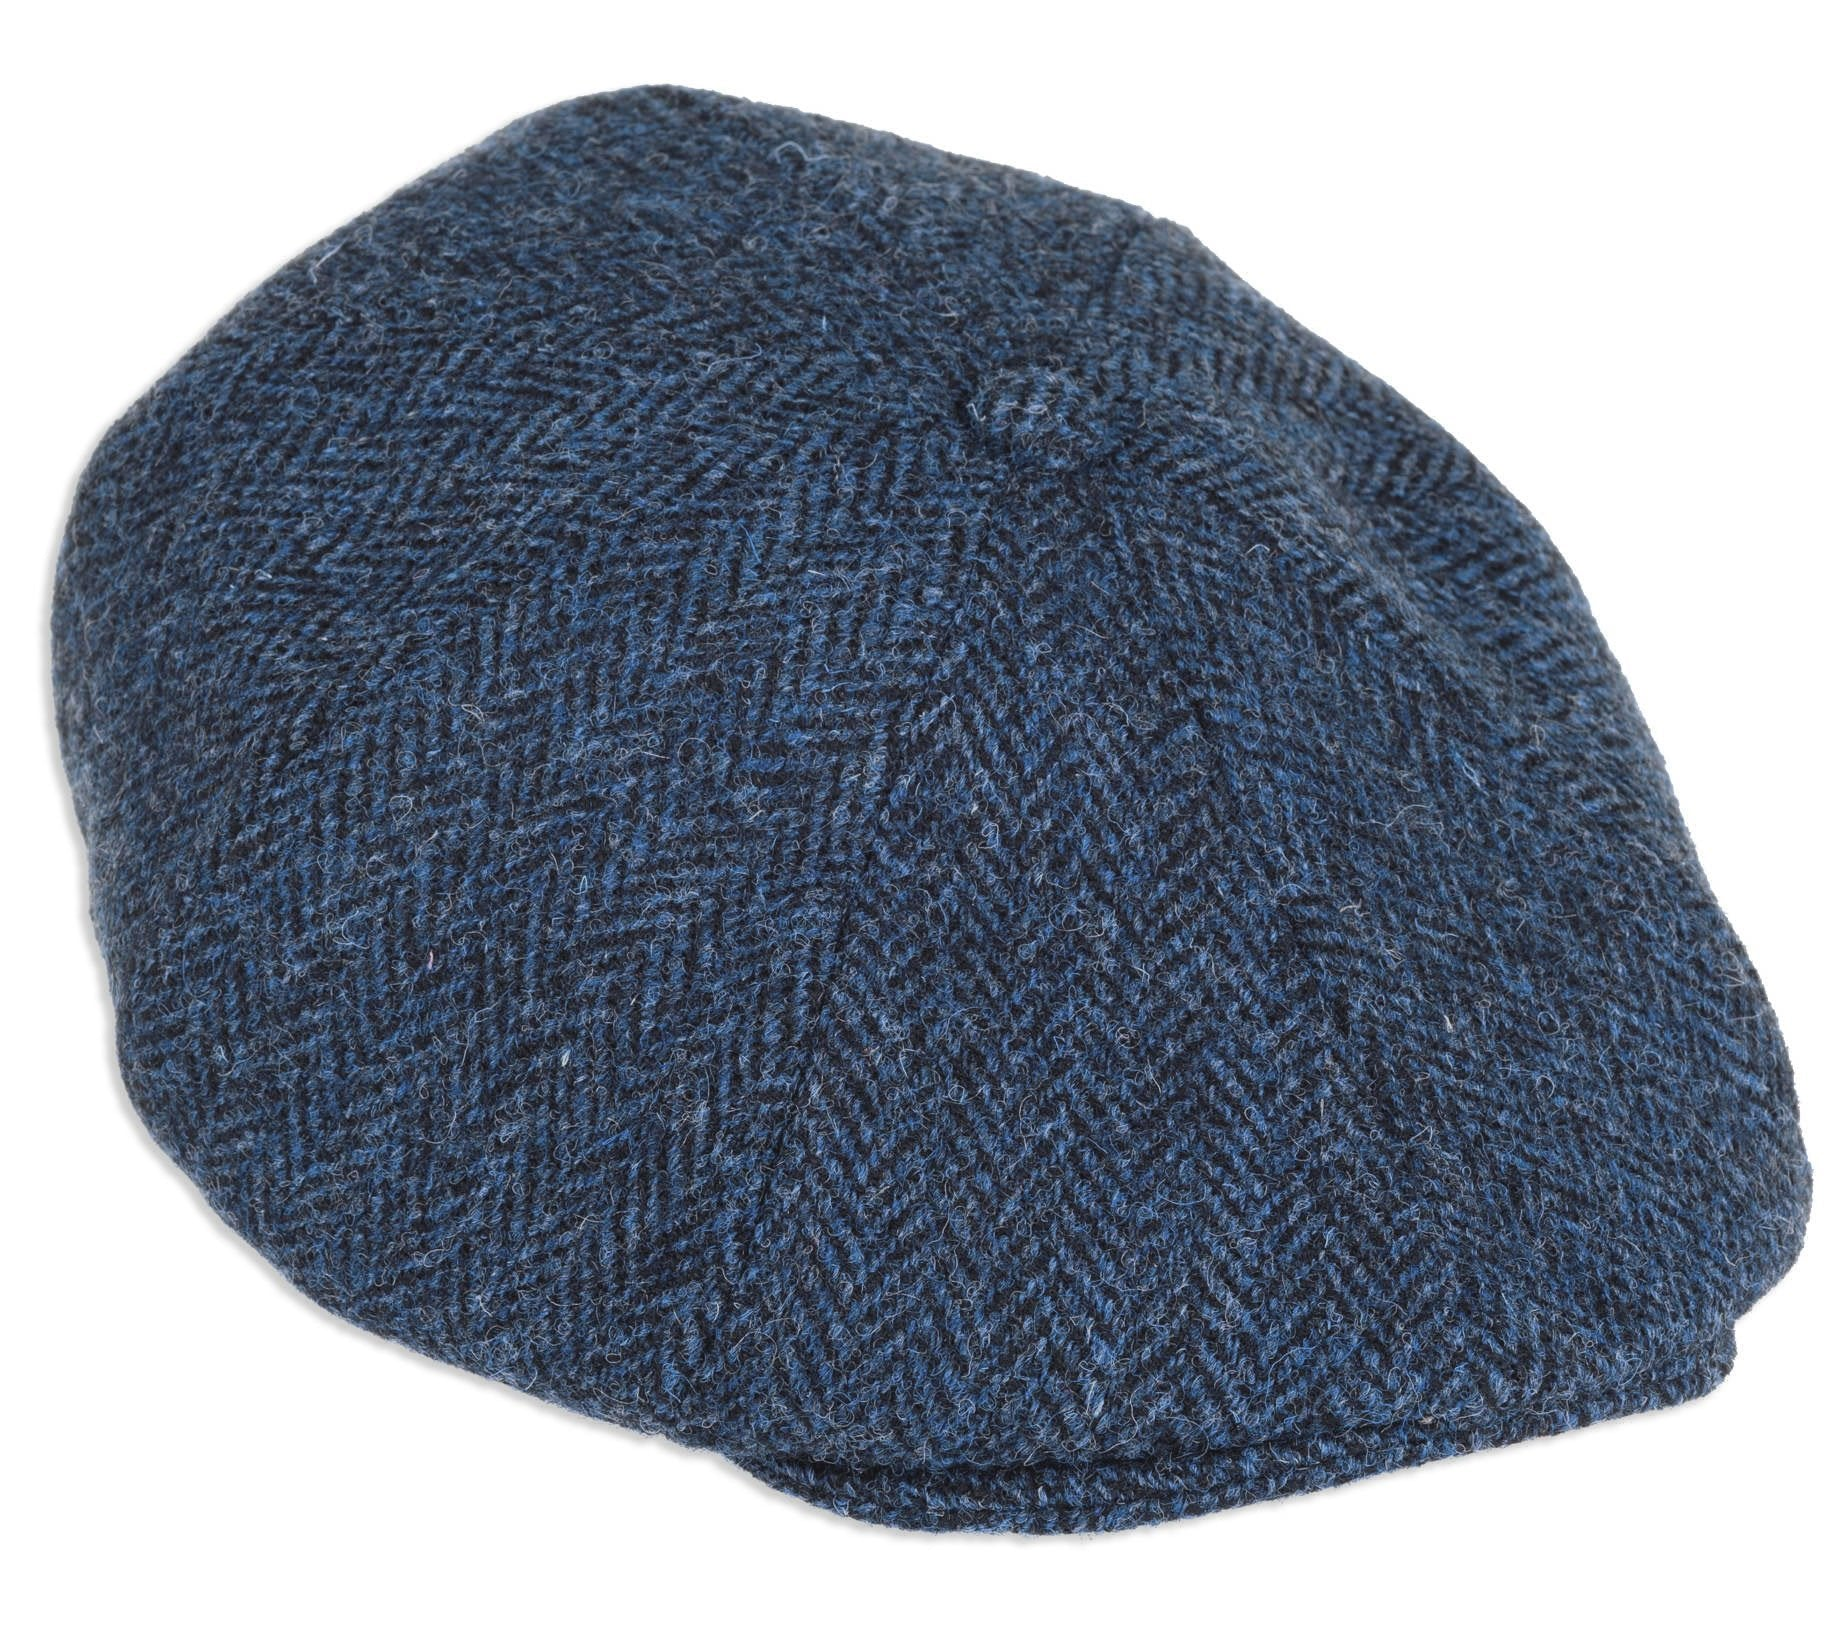 Dark Blue Tweed Cap